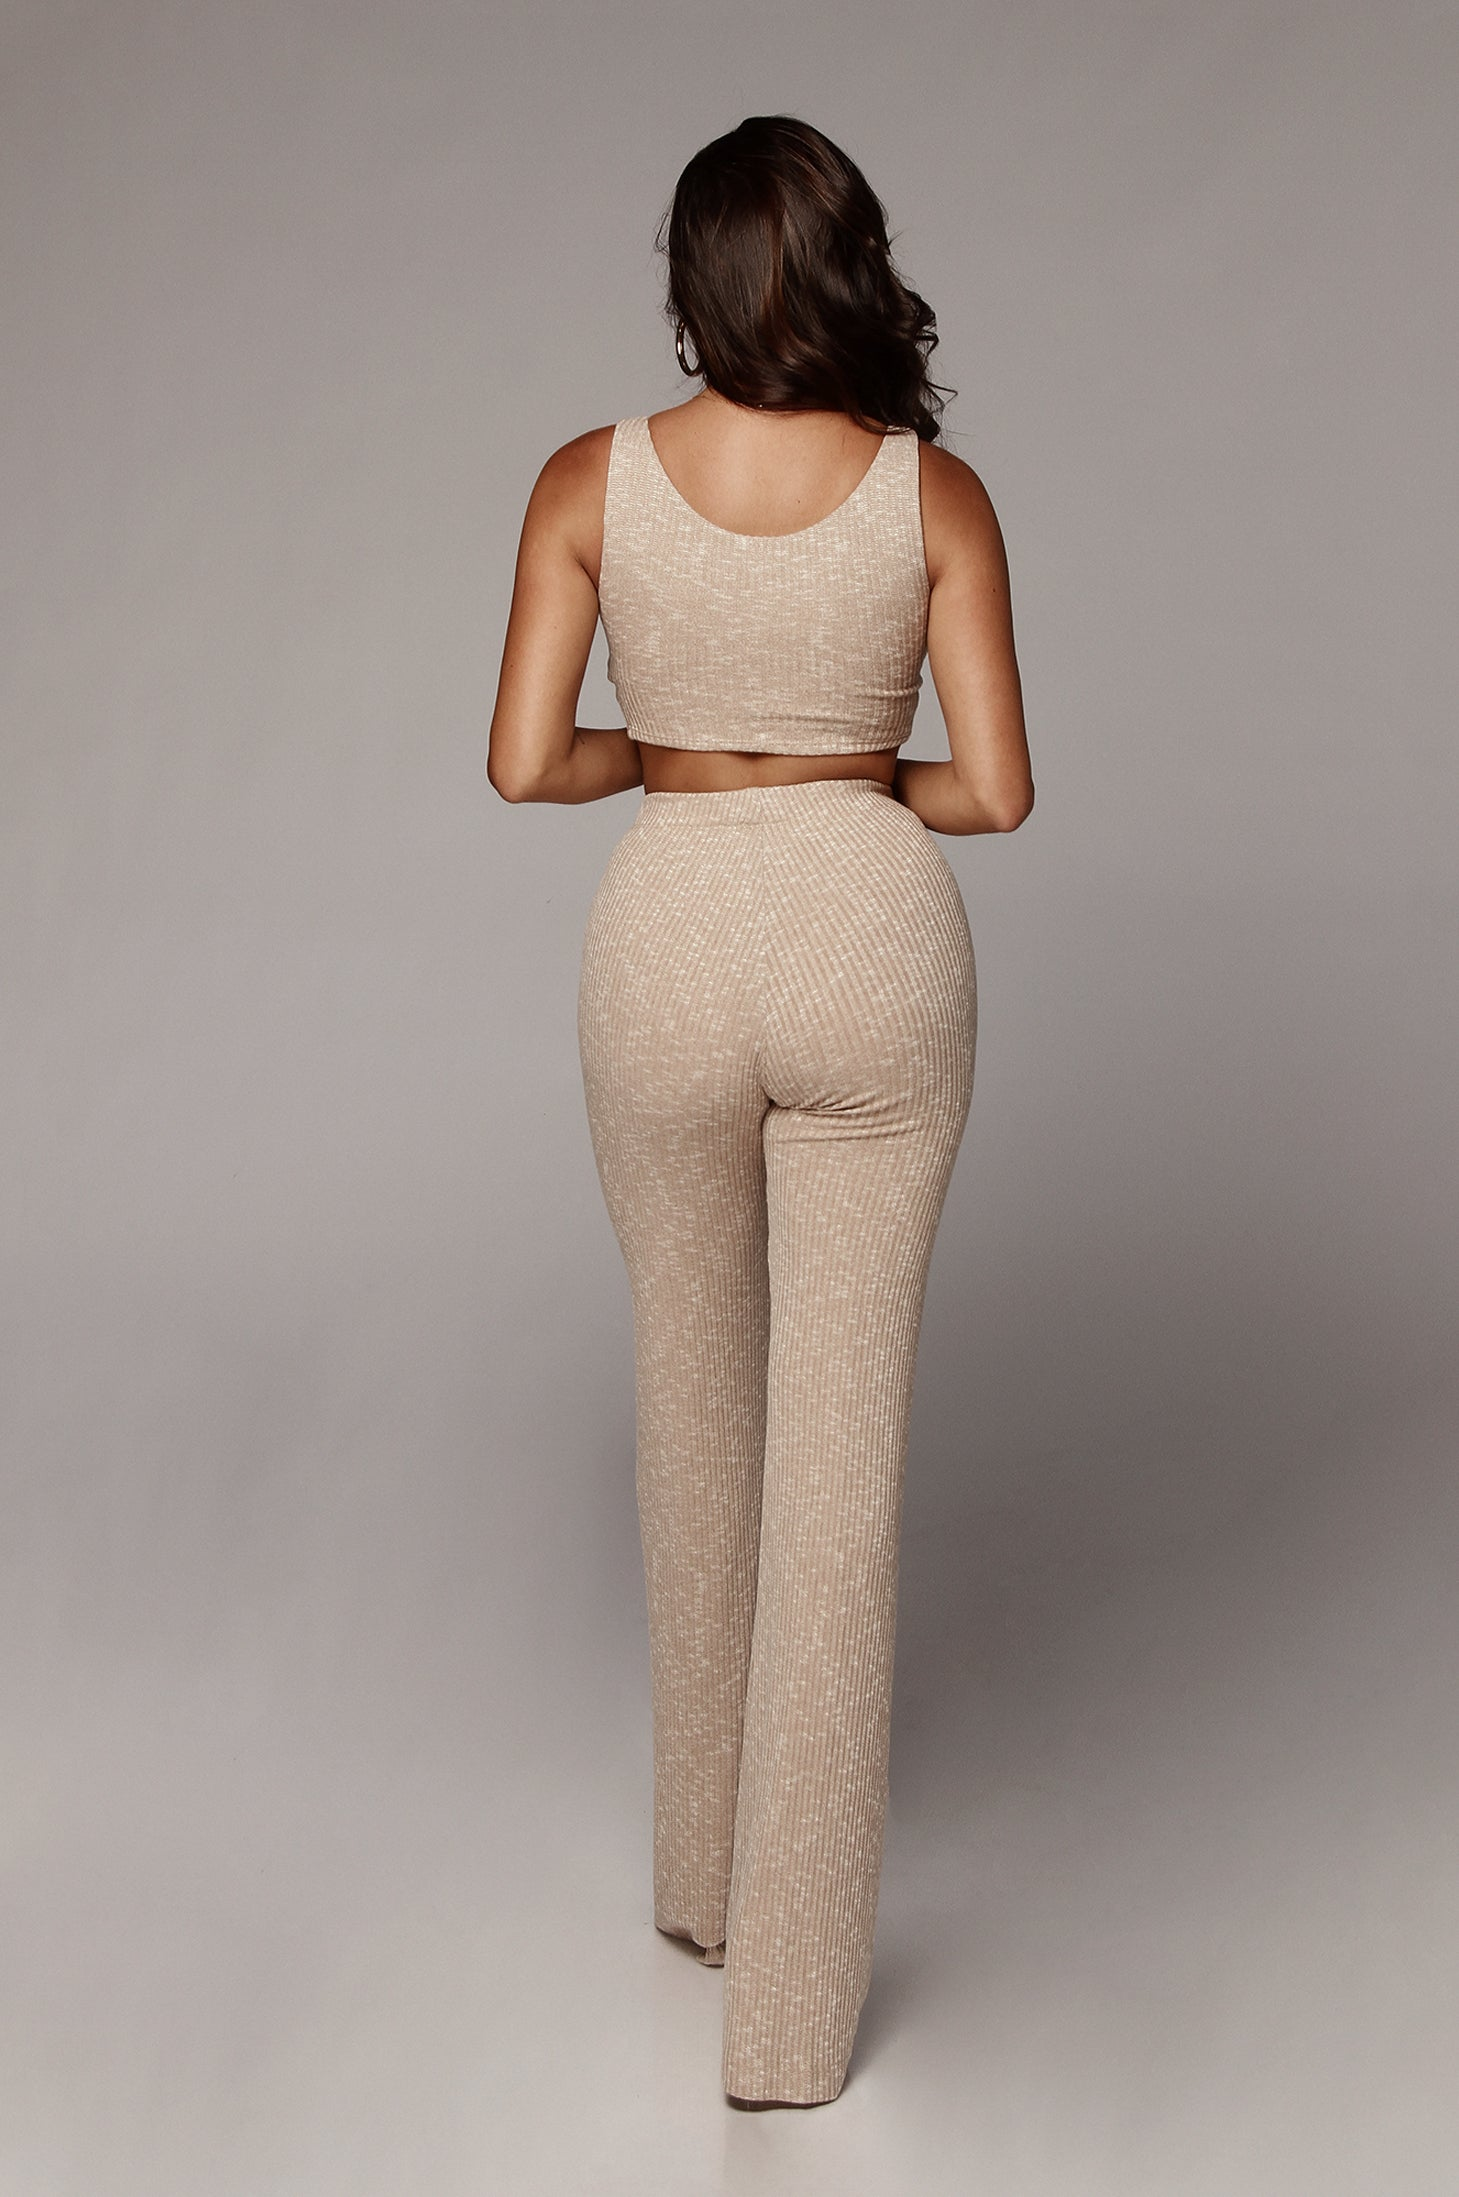 Coco Minnie Ribbed Pants